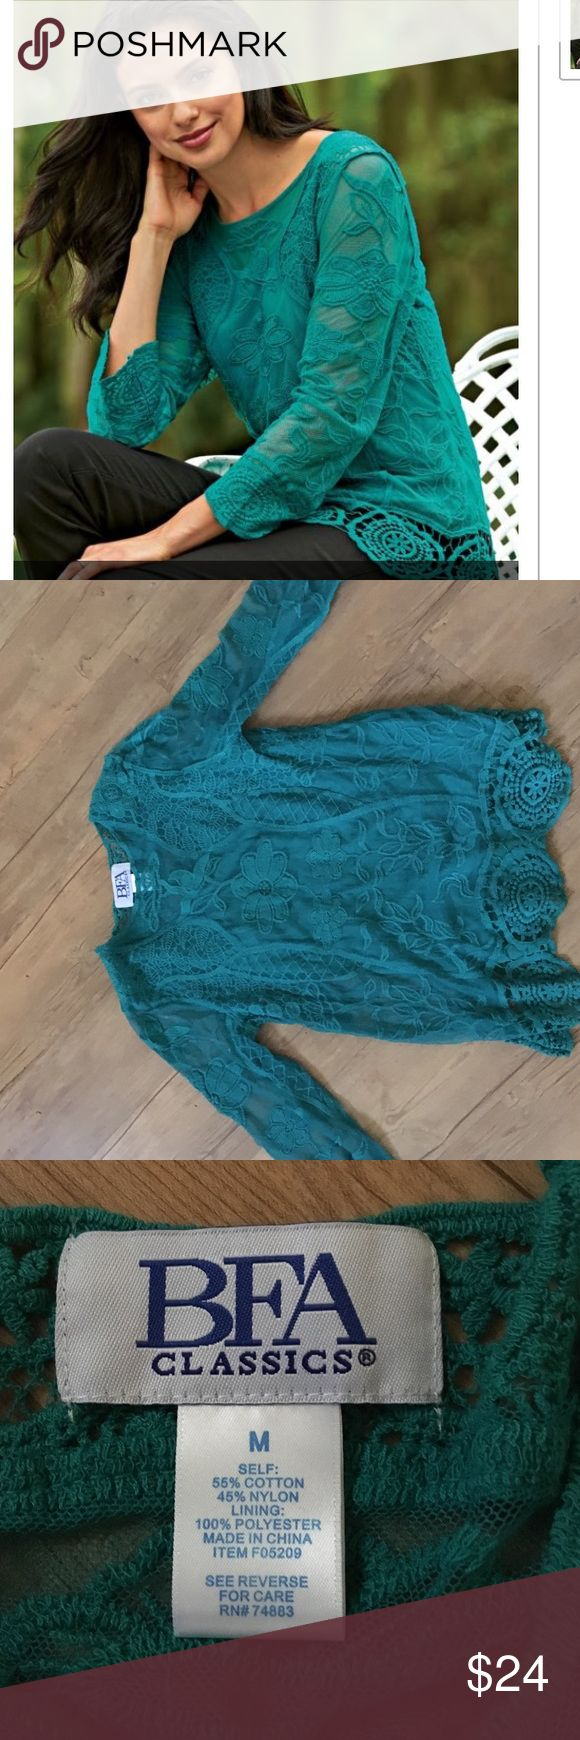 Teal lace too with crochet hemline Teal size medium beautiful lace blouse with crochet hemline. Attached cami underneath. BFA Classics  Tops Tunics